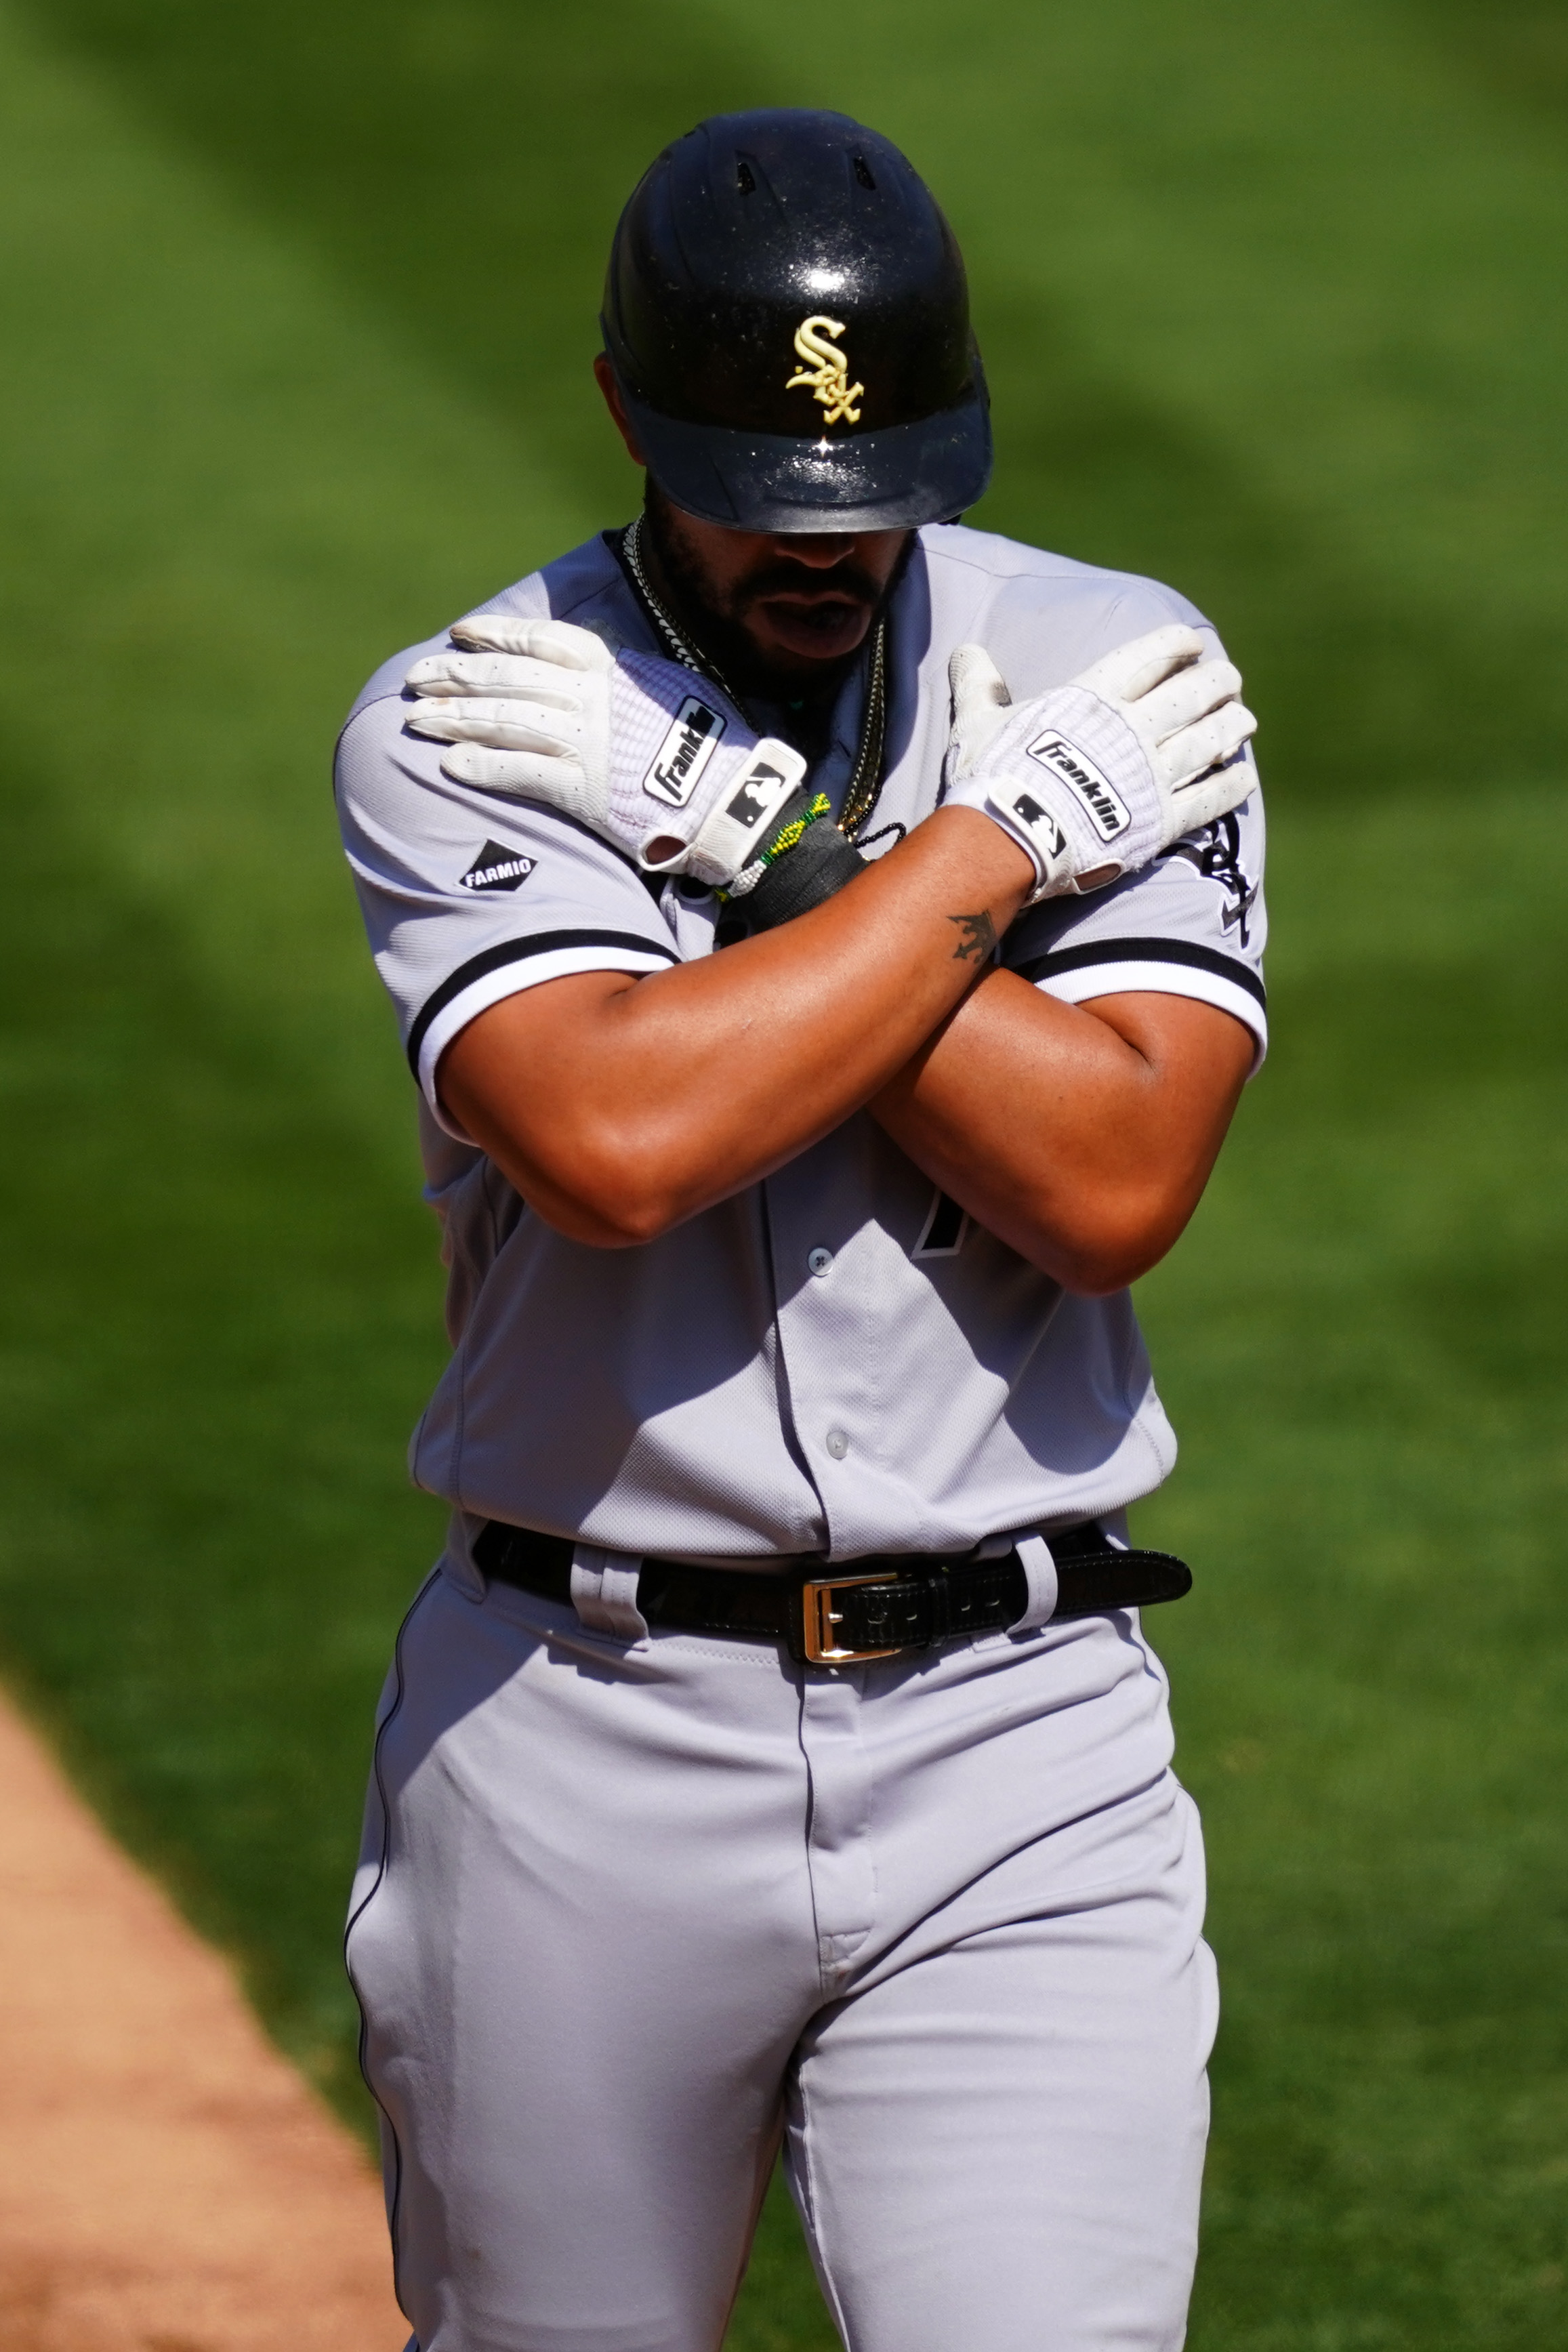 American League Wild Card Game 1: Chicago White Sox v. Oakland Athletics